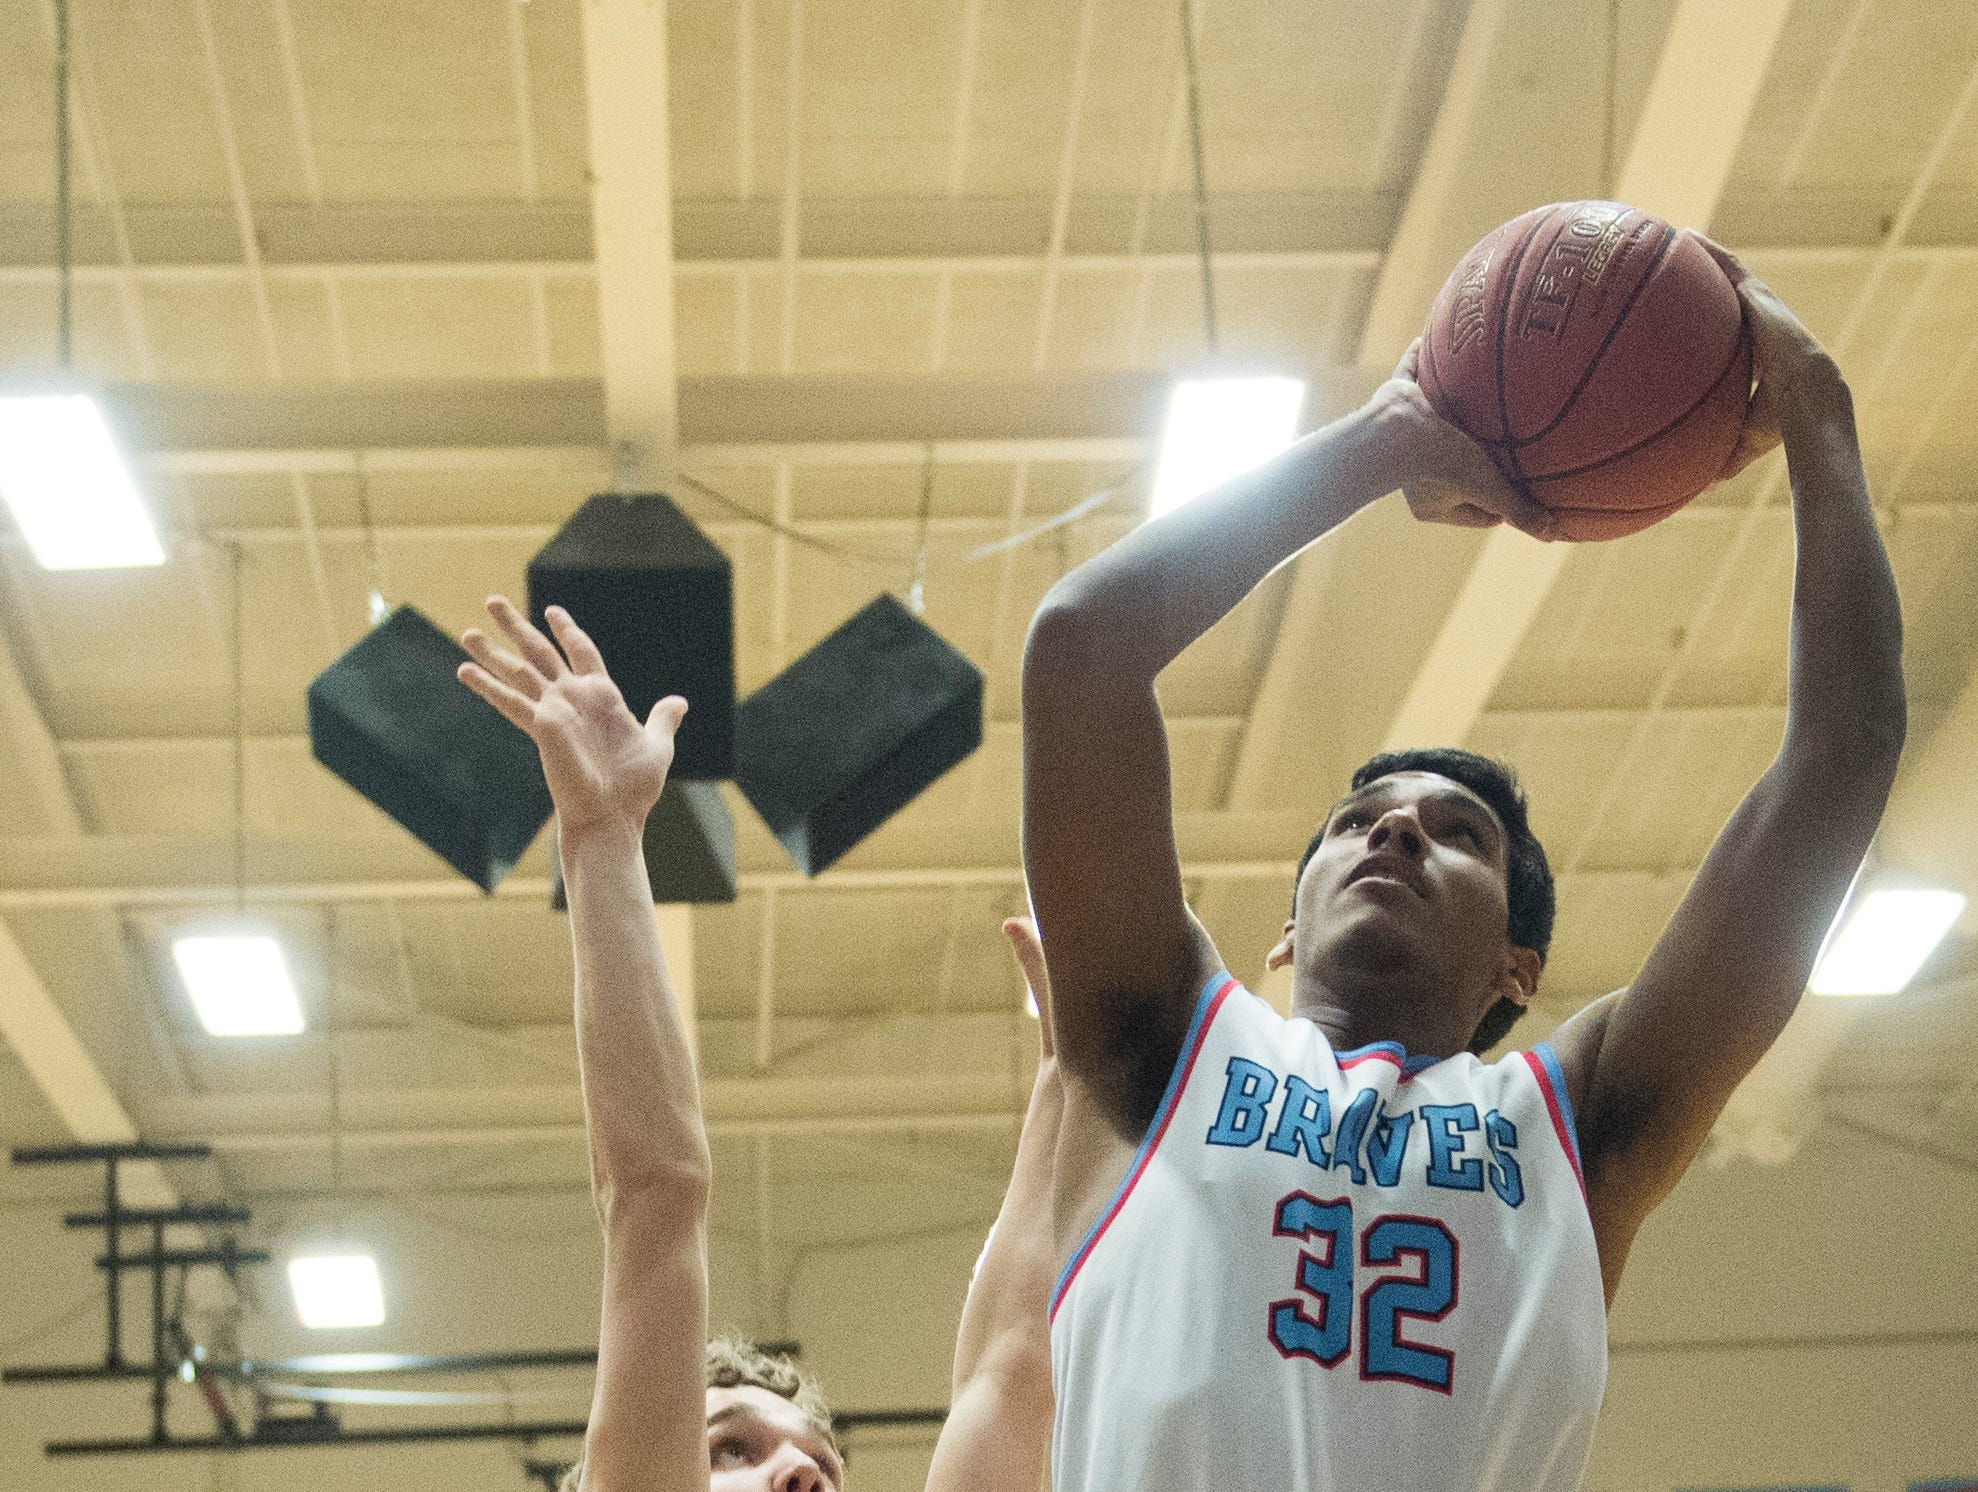 Union County's Clem Johnson (32) takes a shot during the during the 2019 Sixth District championship game against the Henderson County Colonels at Union County High School Thursday, Feb. 21, 2019.